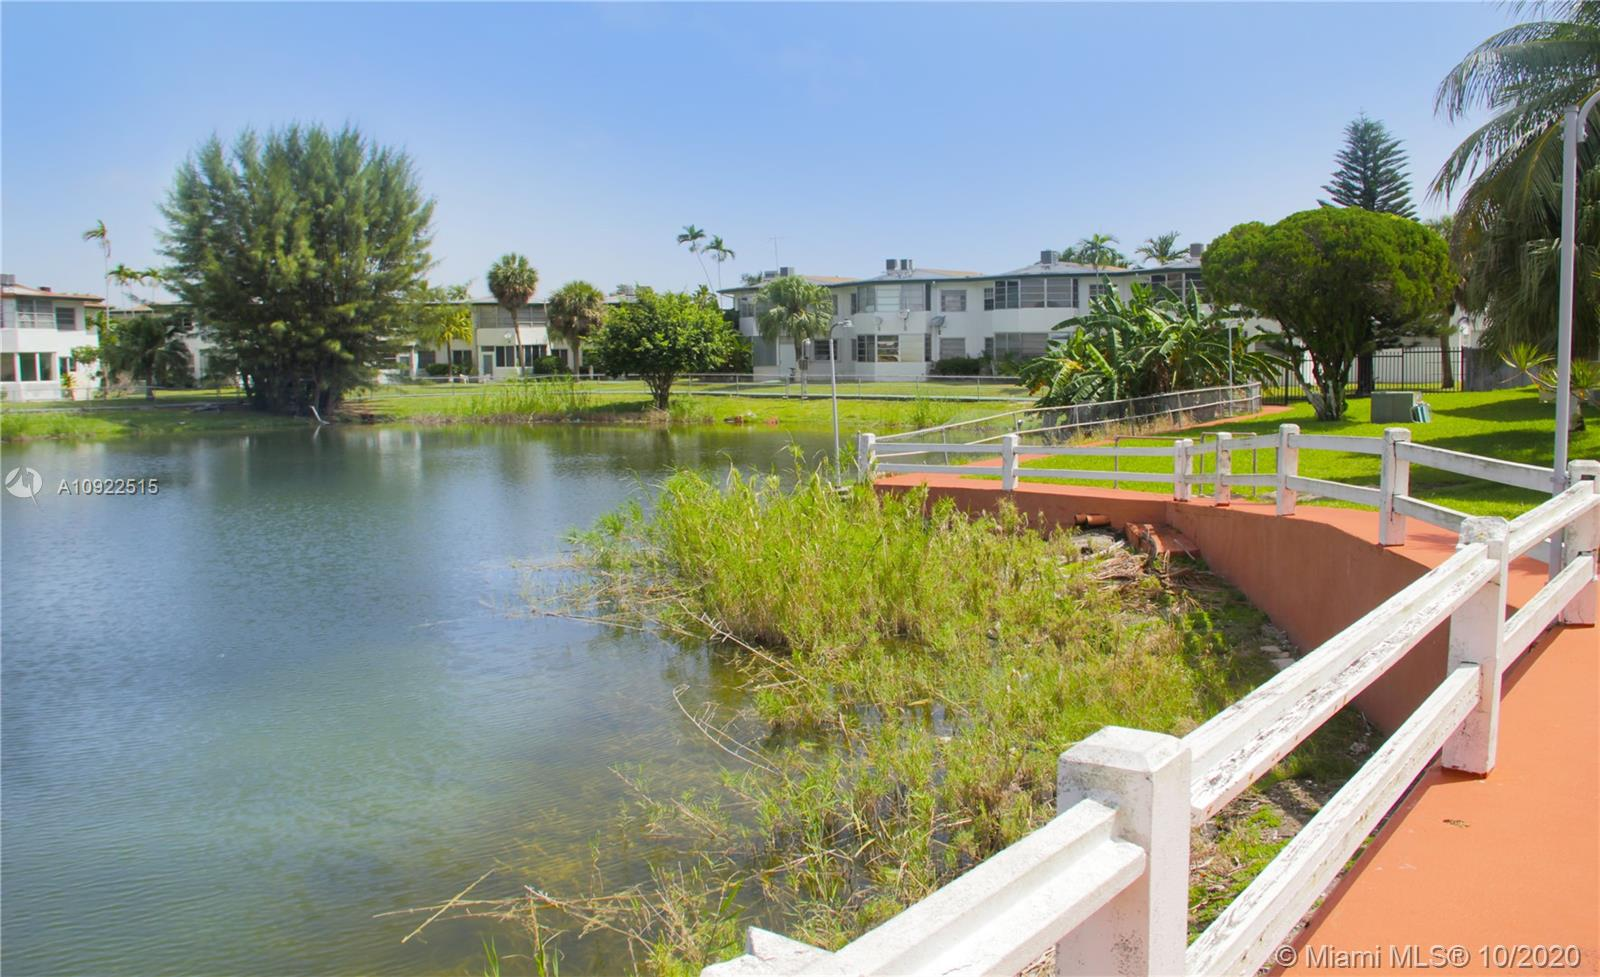 18630 NE 18th Ave #236-C For Sale A10922515, FL